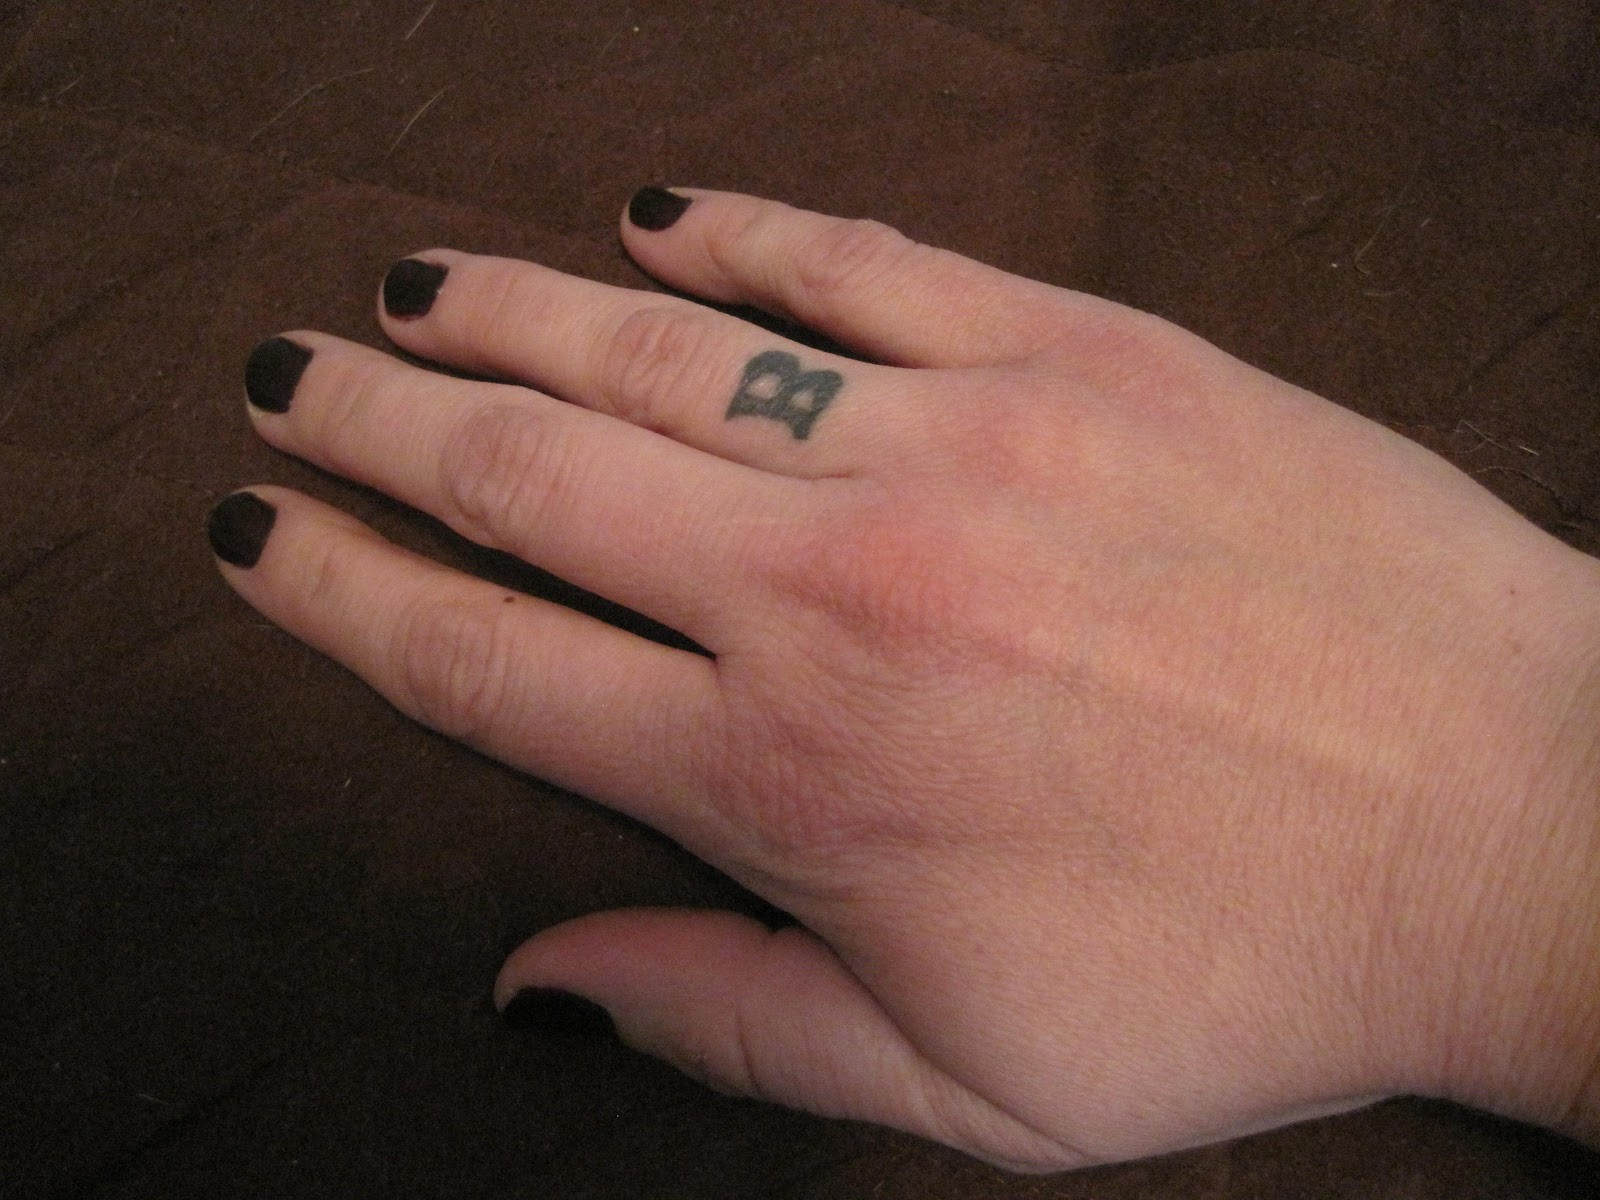 Ilona 39 s blog celtic wedding ring tattoo for Celtic ring tattoos